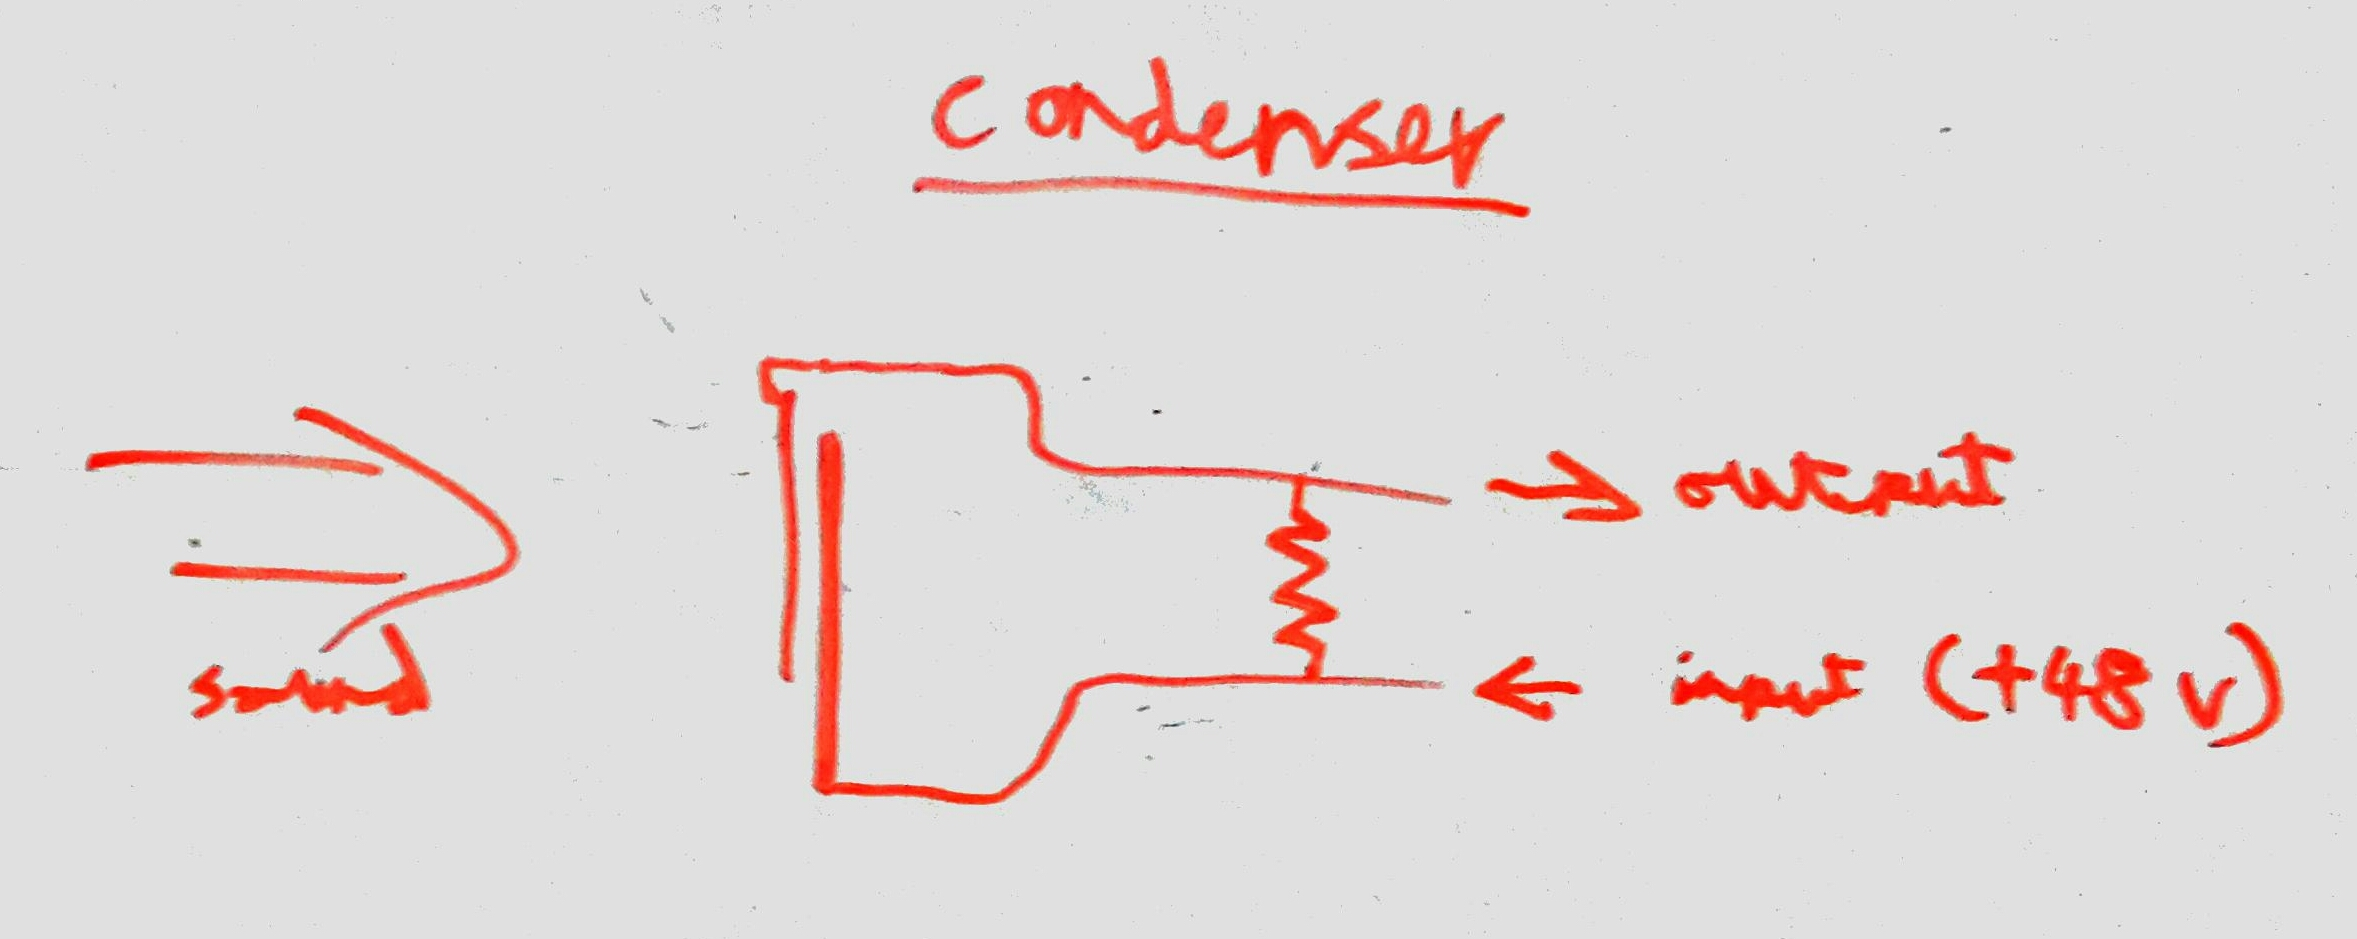 A diagram of how a condenser microphone works on a whiteboard. Full explanation below.